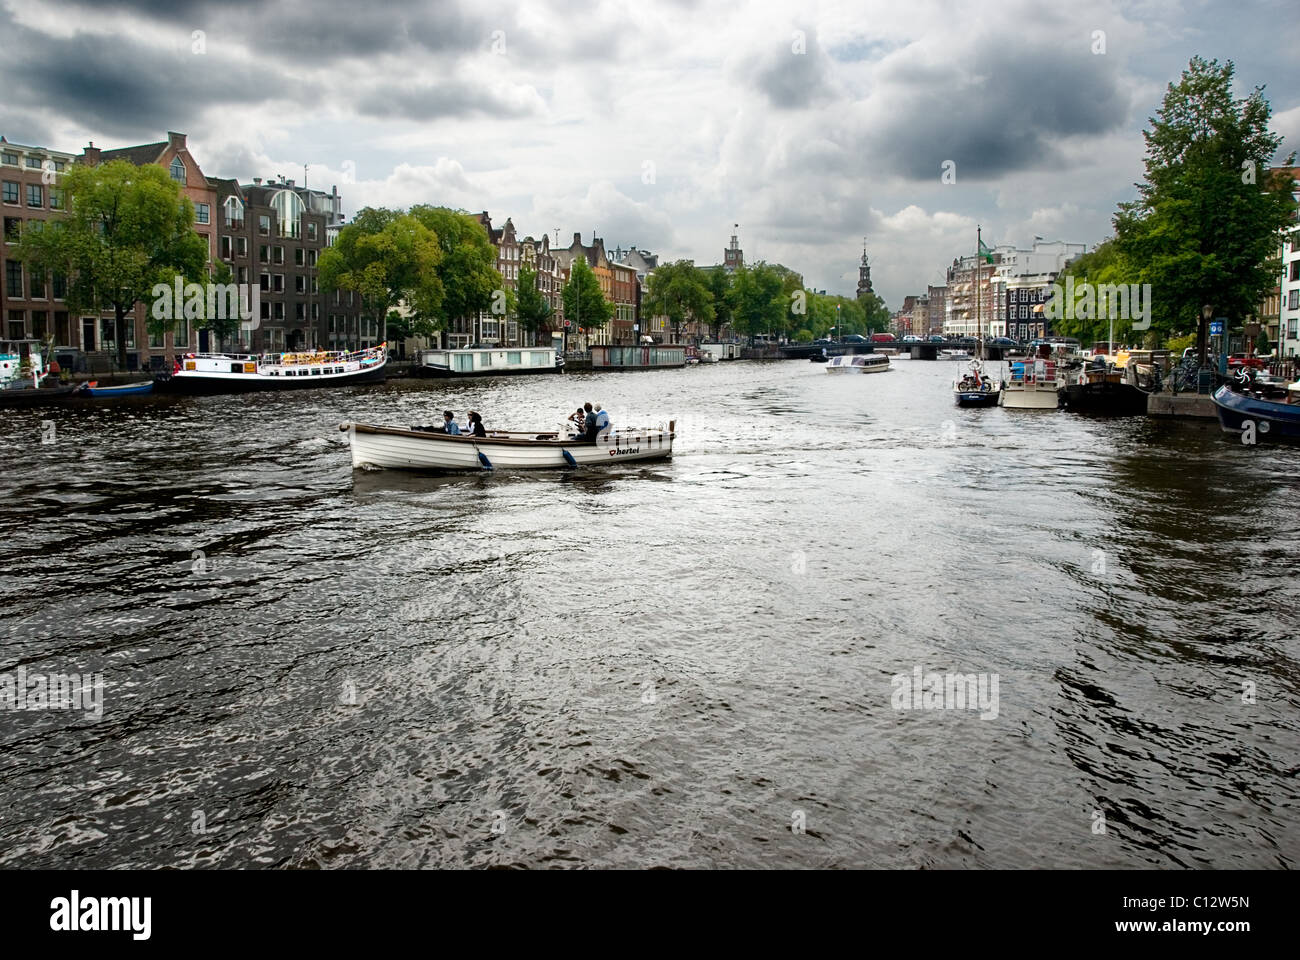 Canal boats in Amsterdam, Holland - Stock Image